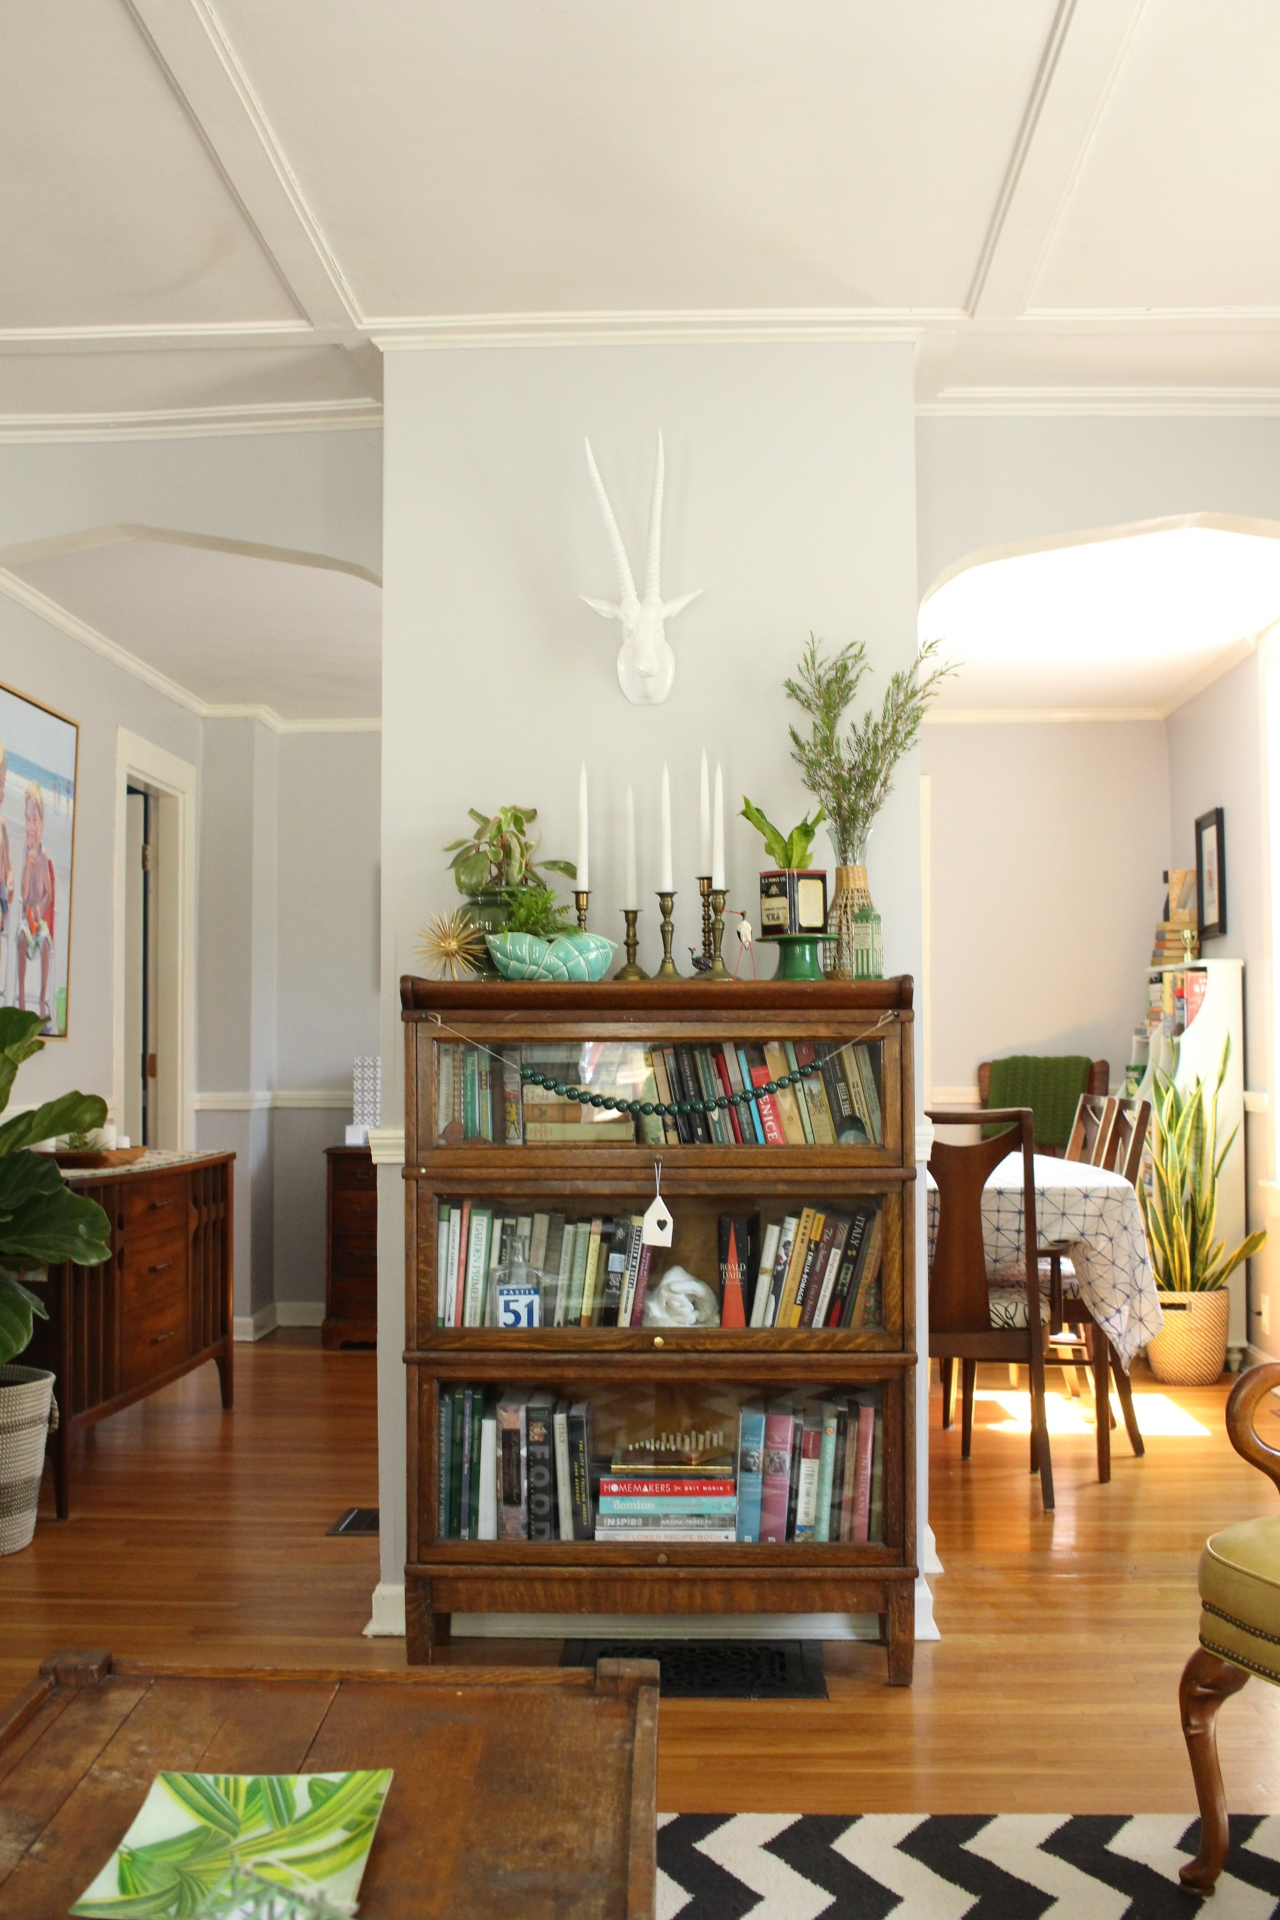 Zandra Zuraw's living room. Bookcase! Plants! Brass!